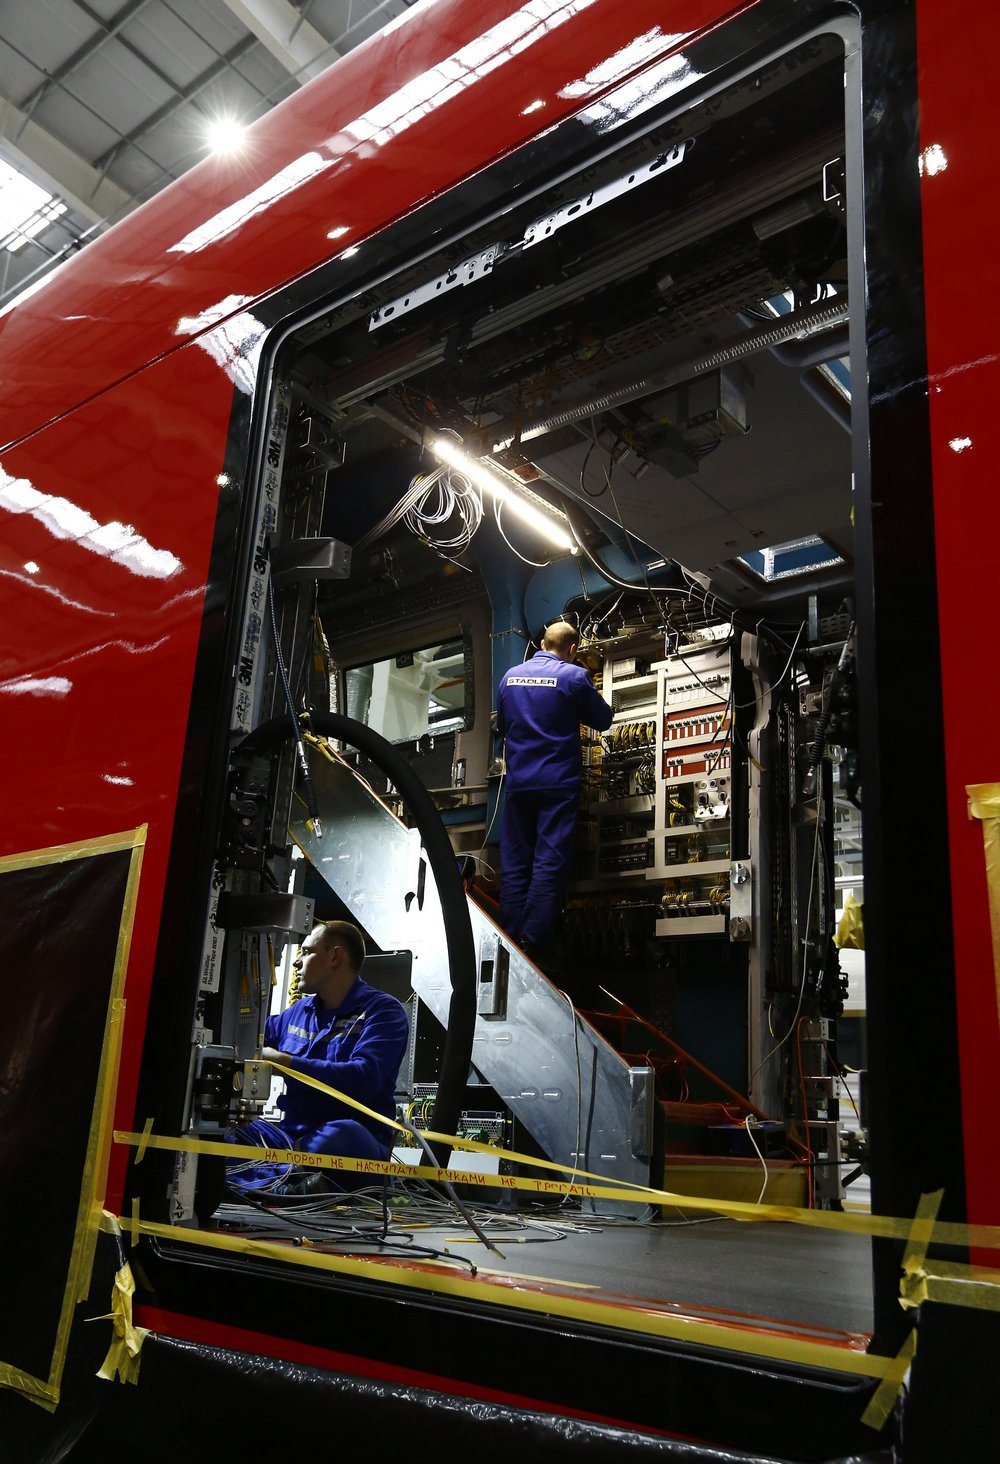 Employees work on an electric train assembly line at the Stadler Minsk plant in Fanipol